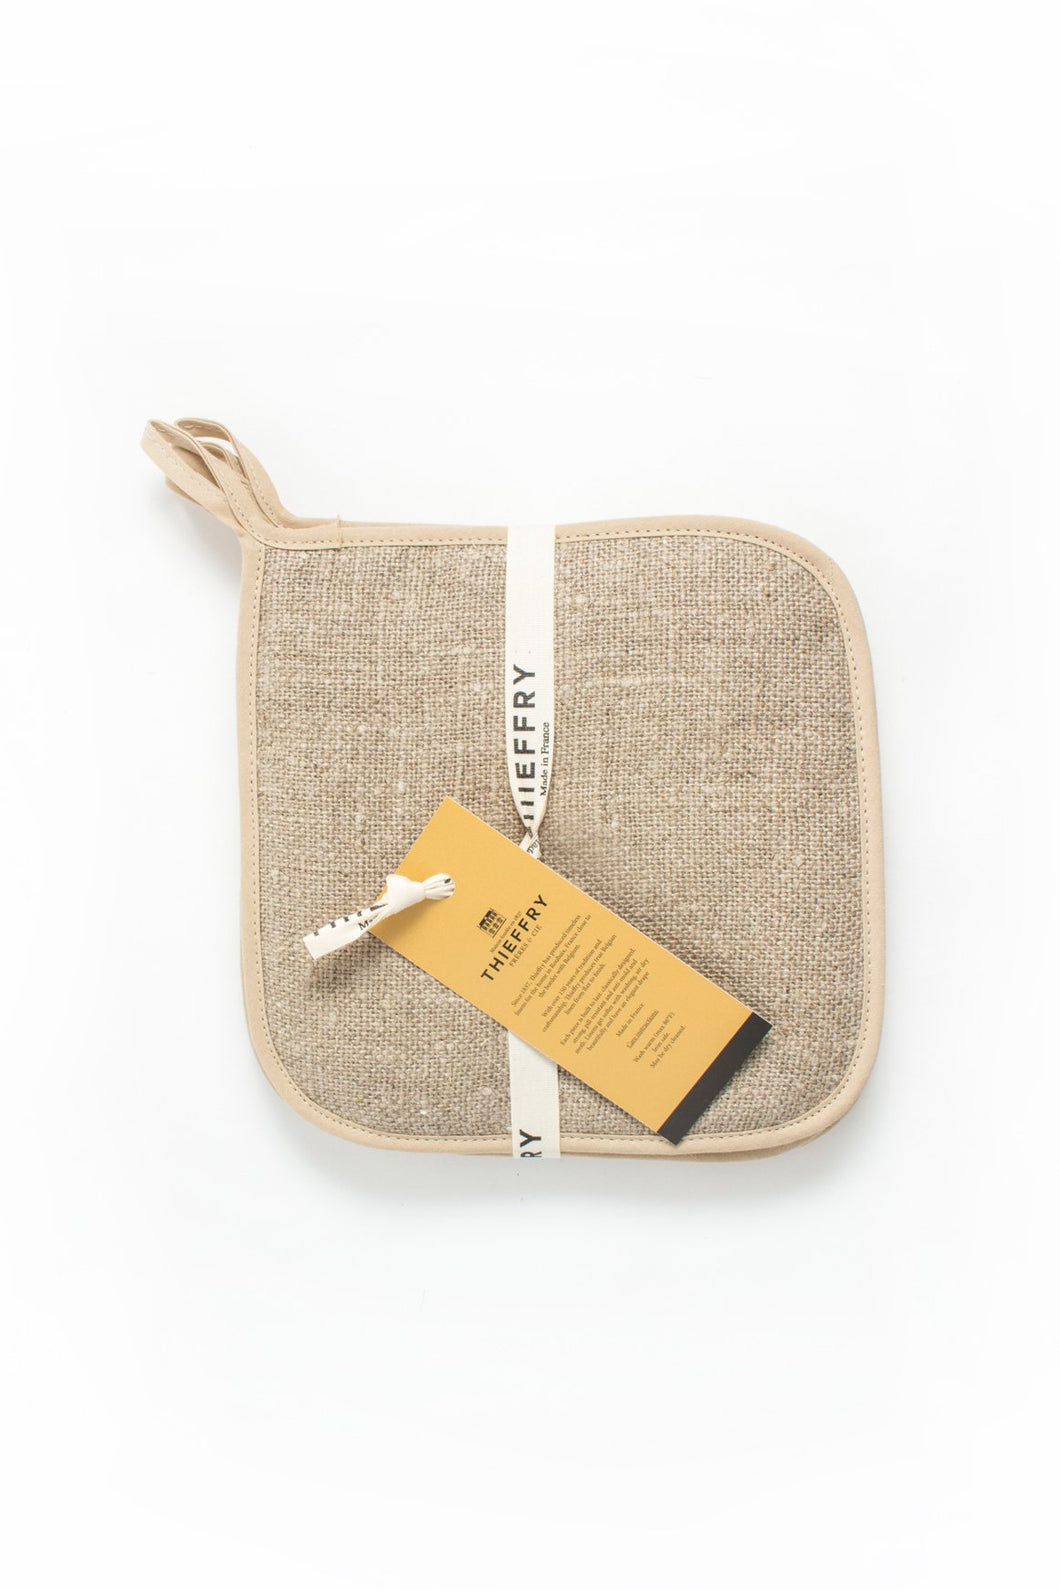 Thieffry Bagatelle Linen Pot Holder